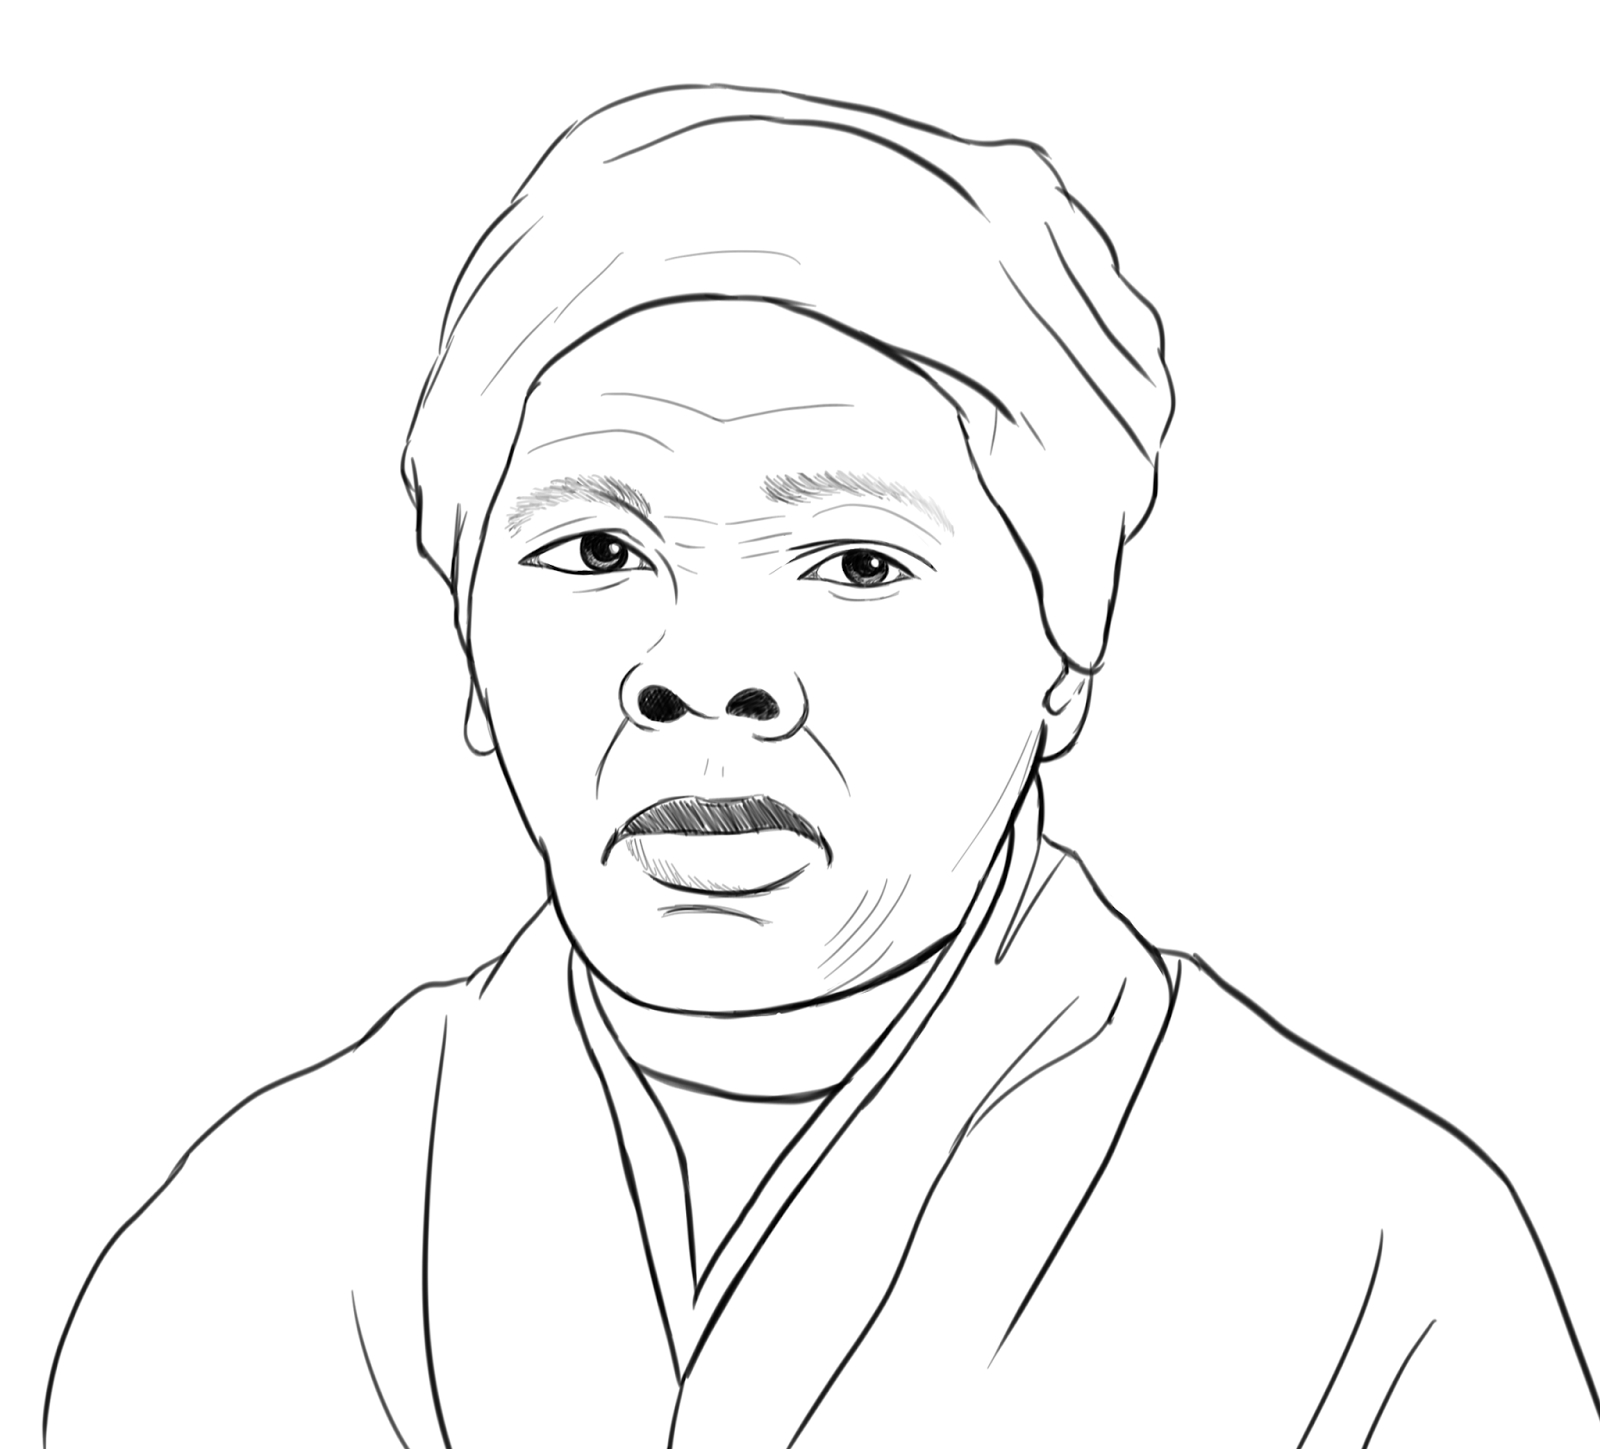 harriet tubman coloring page - coloring pages of harriet tubman